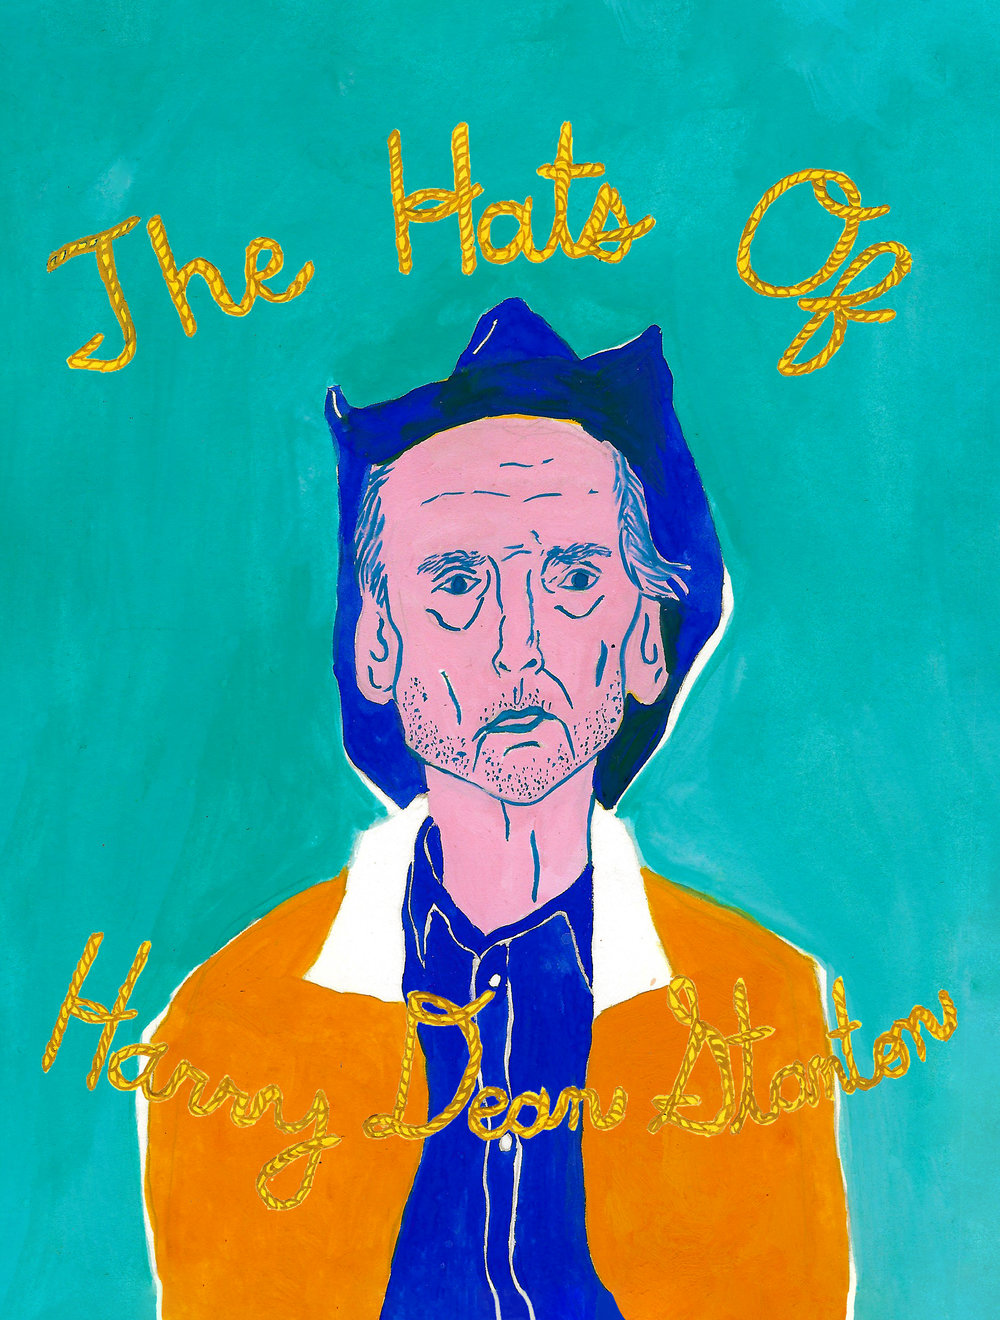 Hats of Harry Dean Stanton